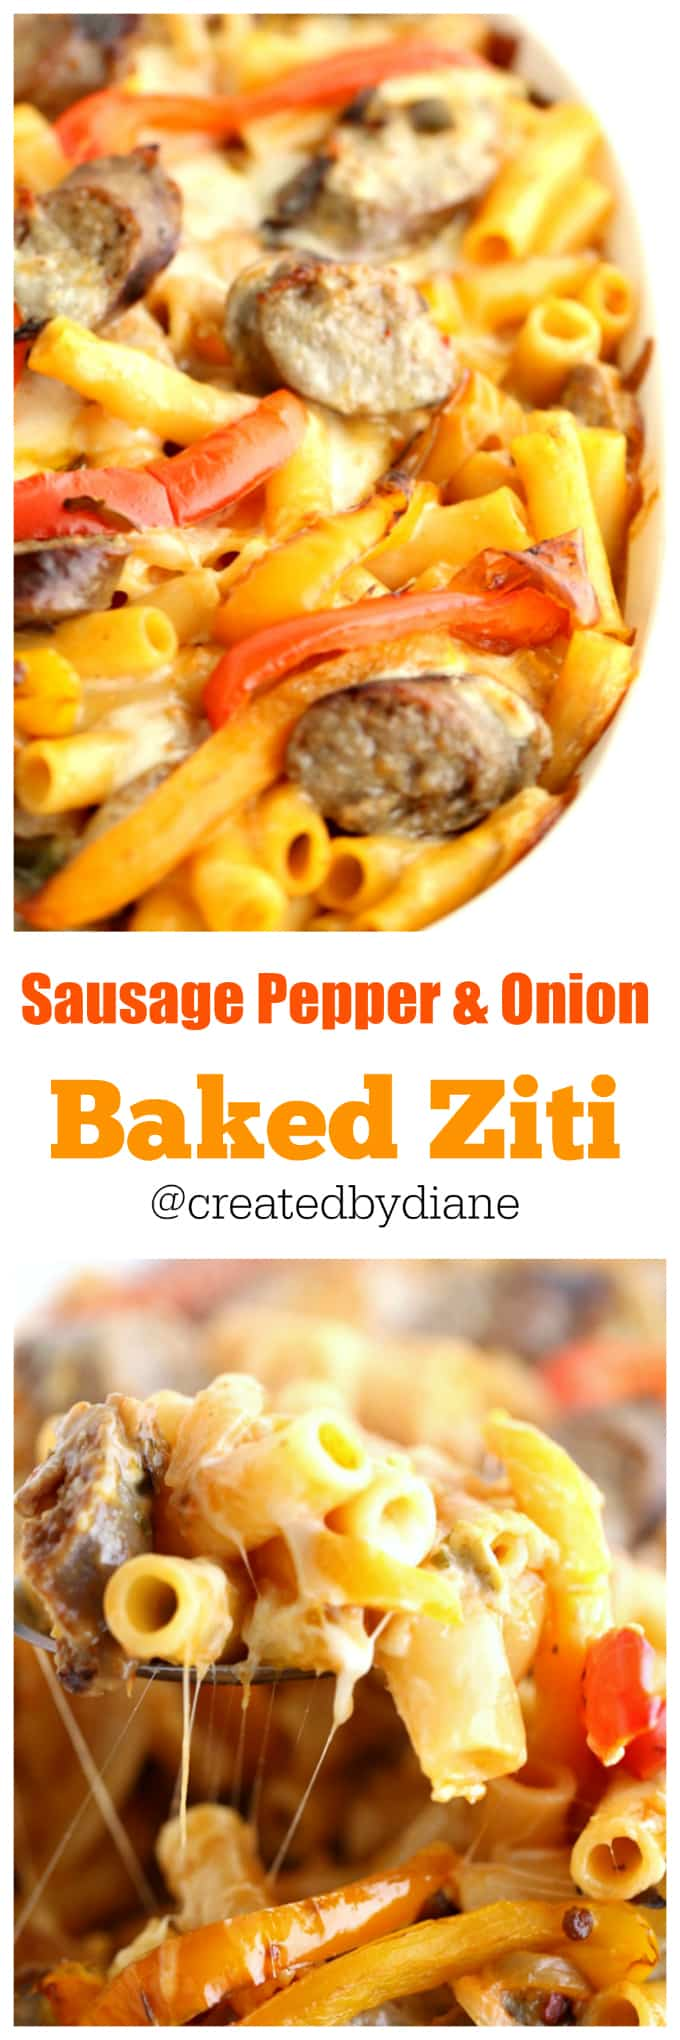 sausage-pepper-and-onion-baked-ziti-recipe-from-www-createdby-diane-com